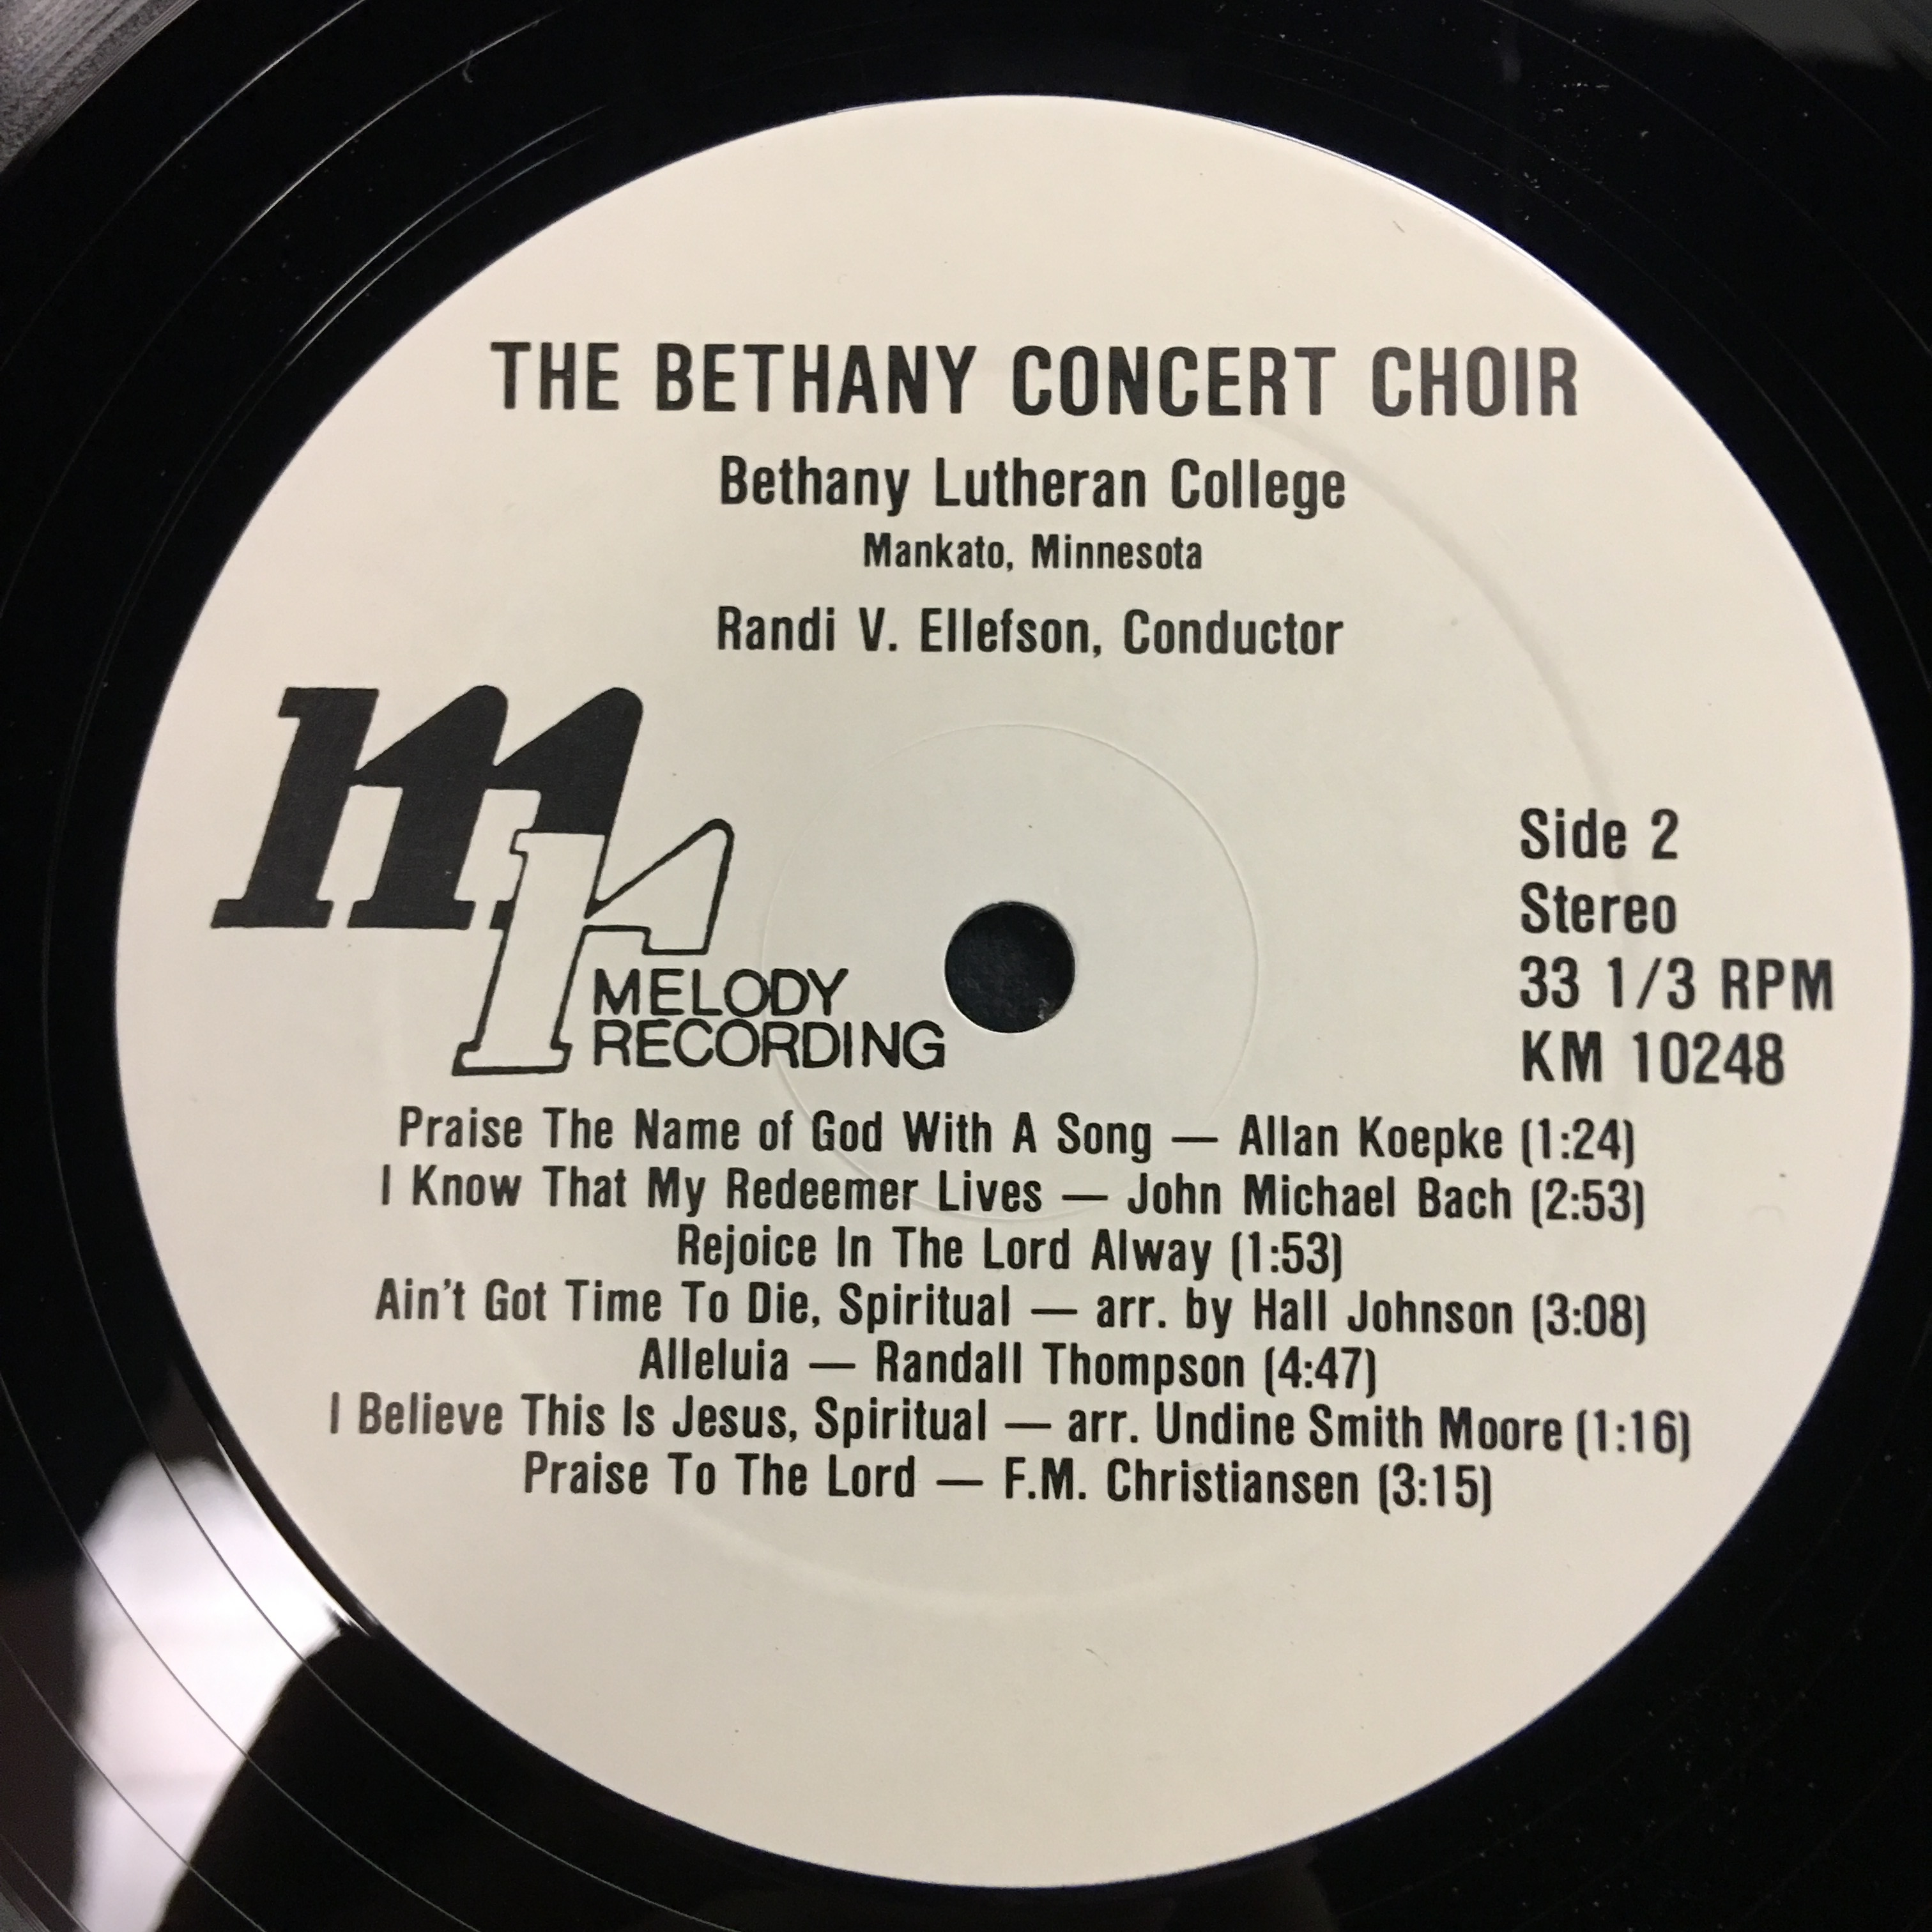 Bethany Lutheran College Choir 1982 Vinyl 1 Side 2